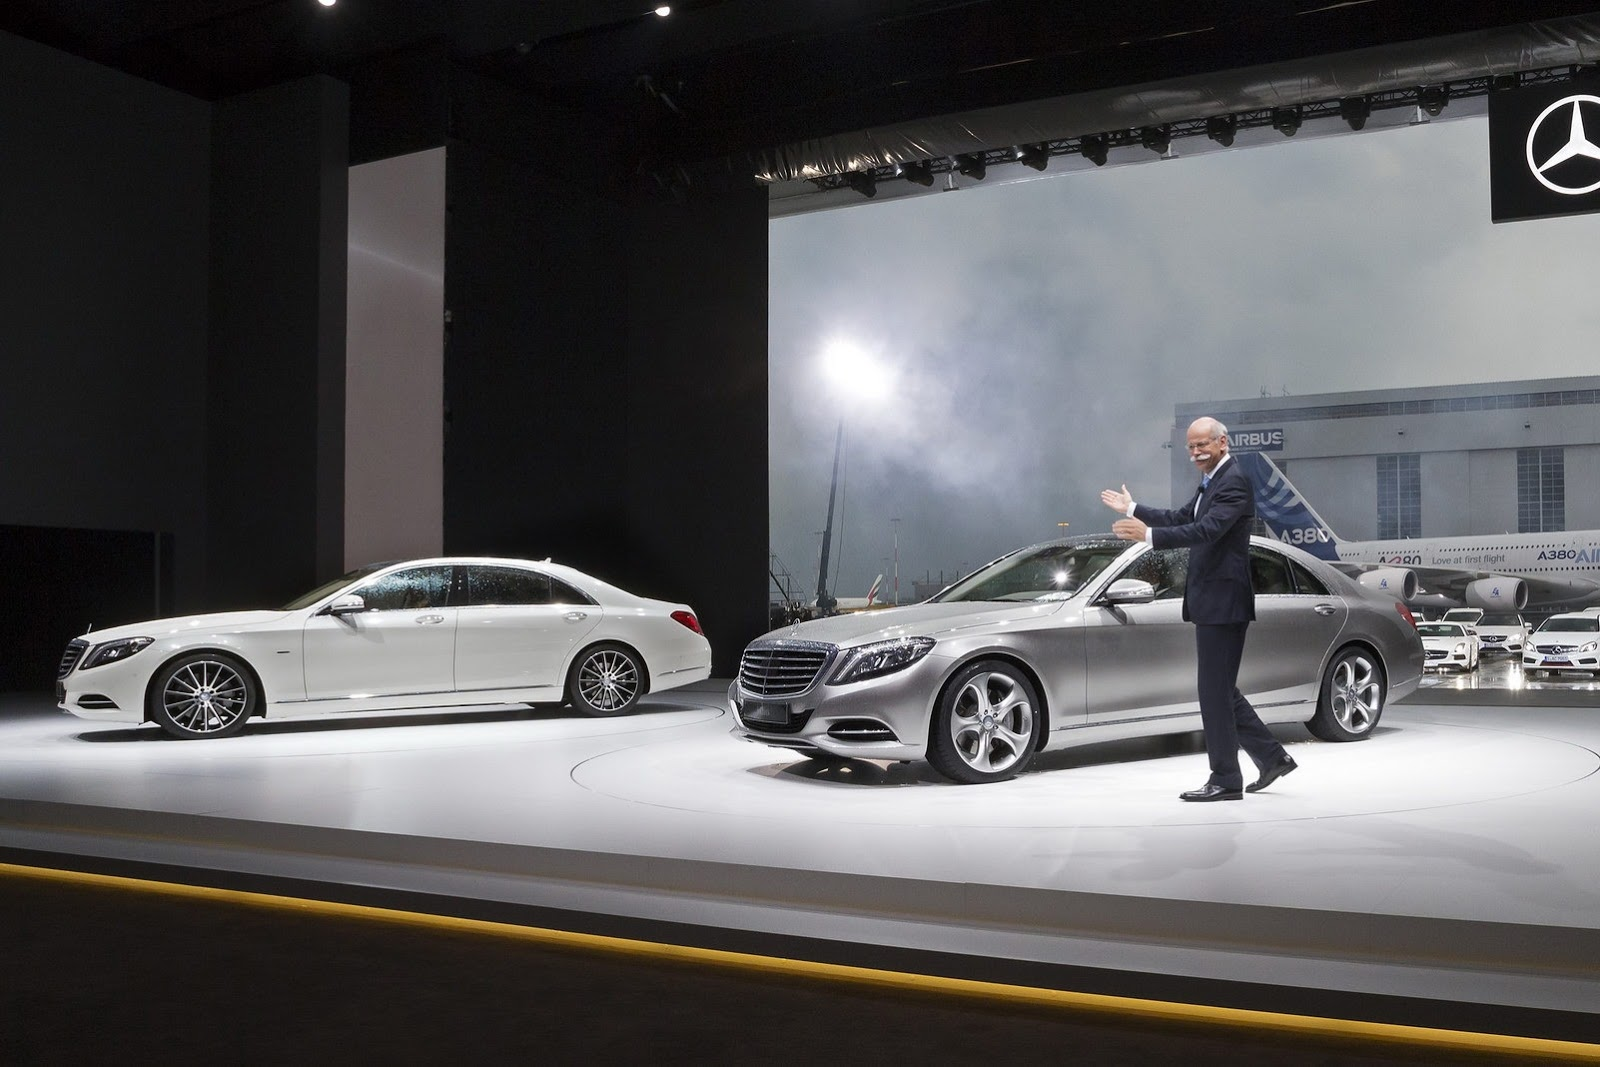 2014 Mercedes Benz S-Class Reveal Event - SMADE MEDIA (7)